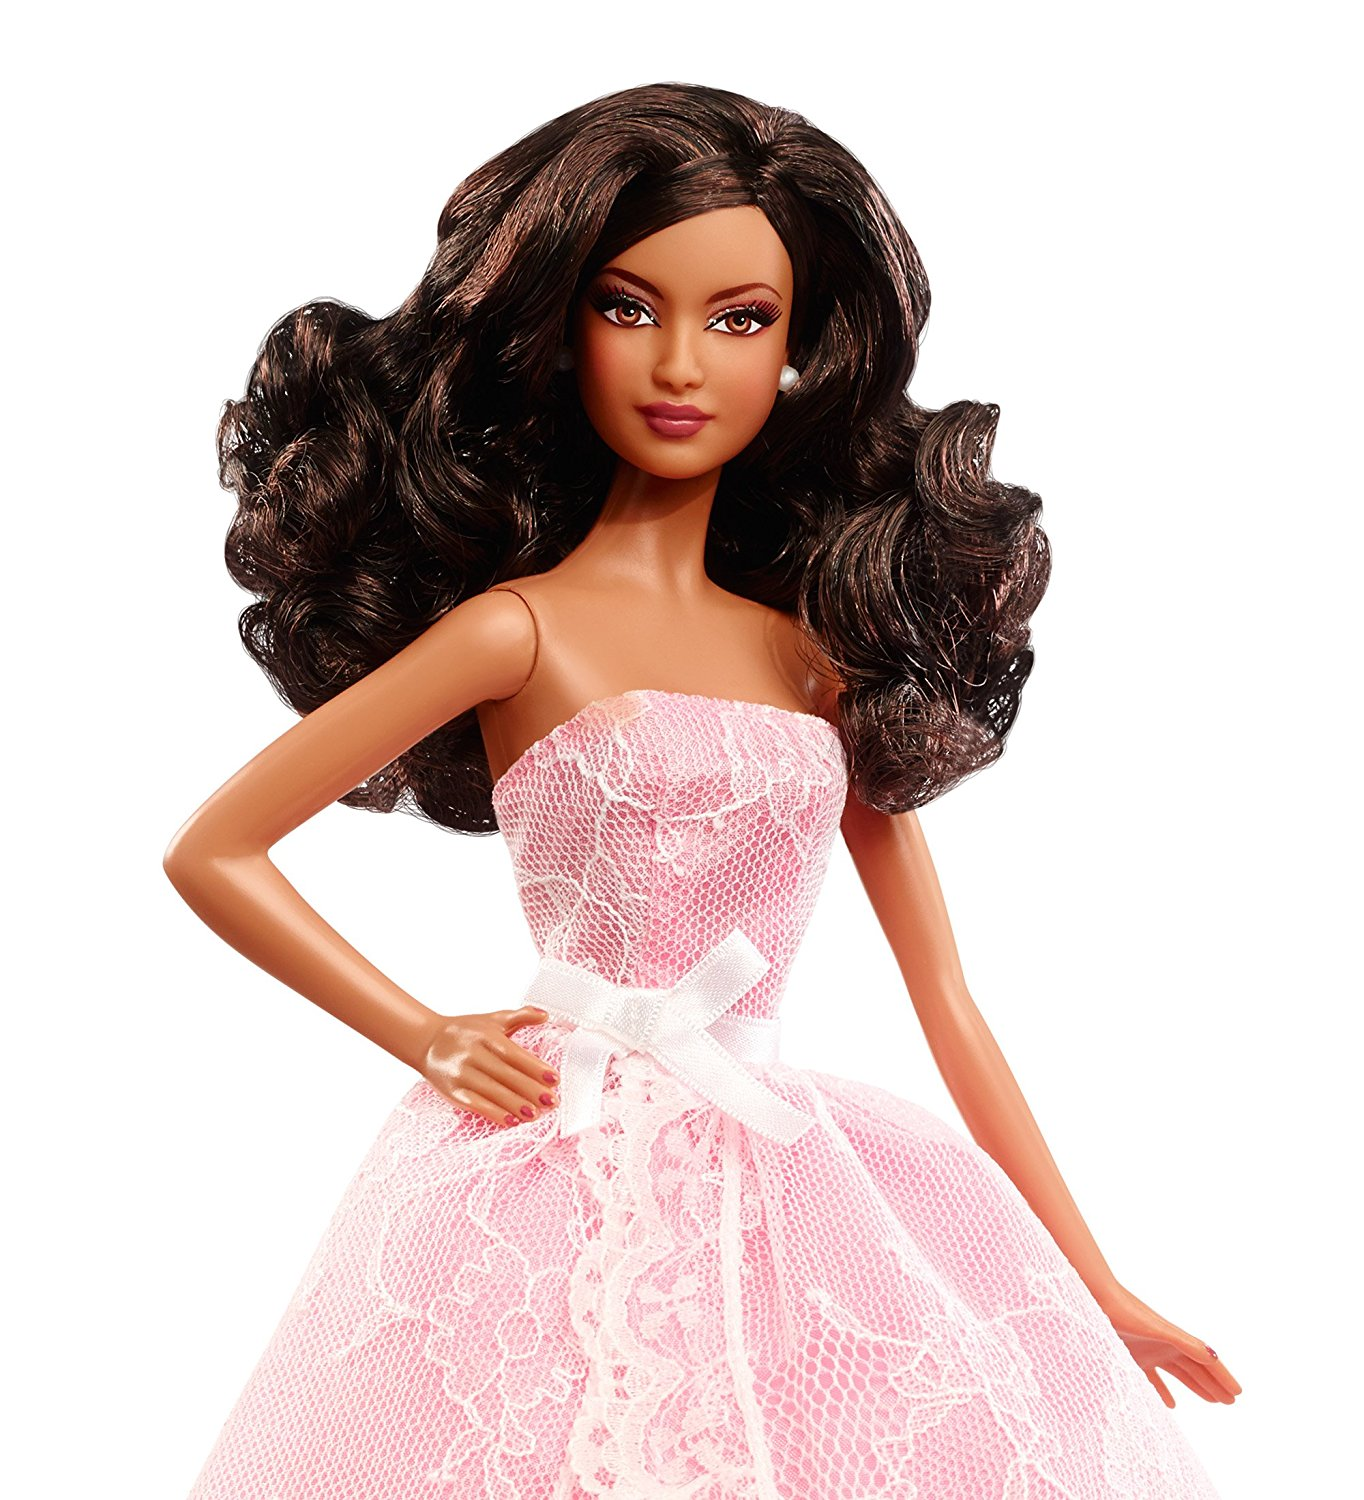 Birthday Wishes Barbie Doll CHF93 2